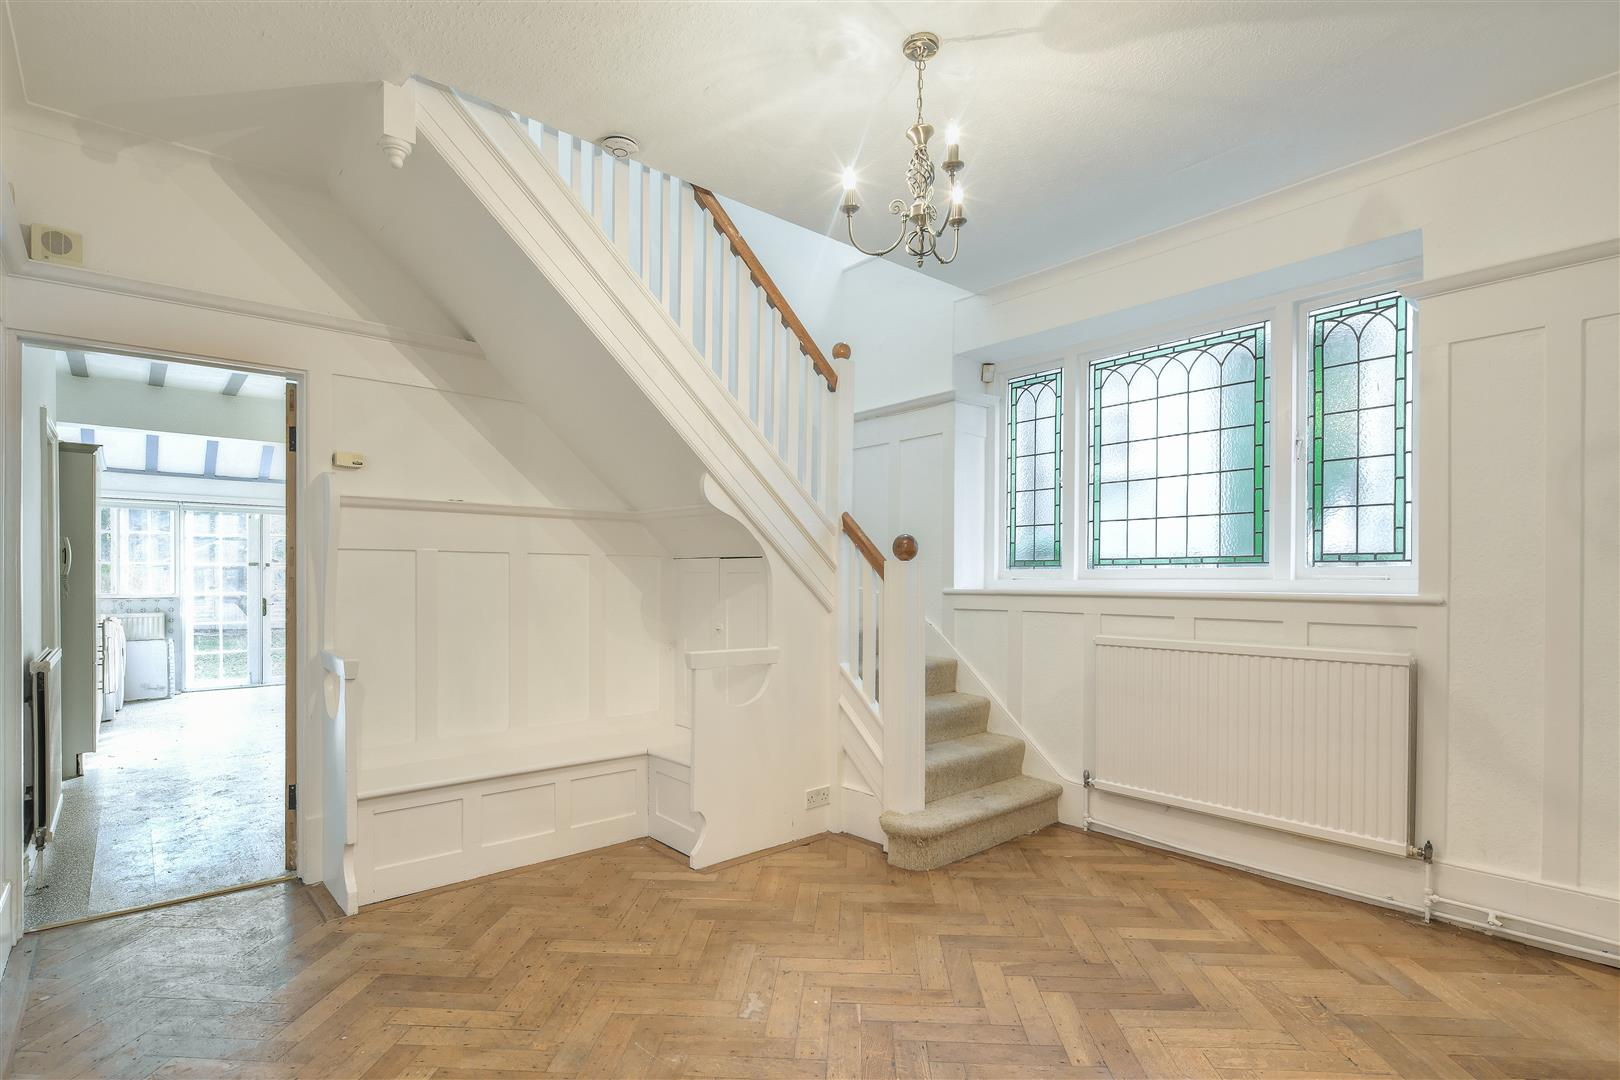 6 Bedrooms House for sale in West Heath Drive, Golders Hill Park, NW11